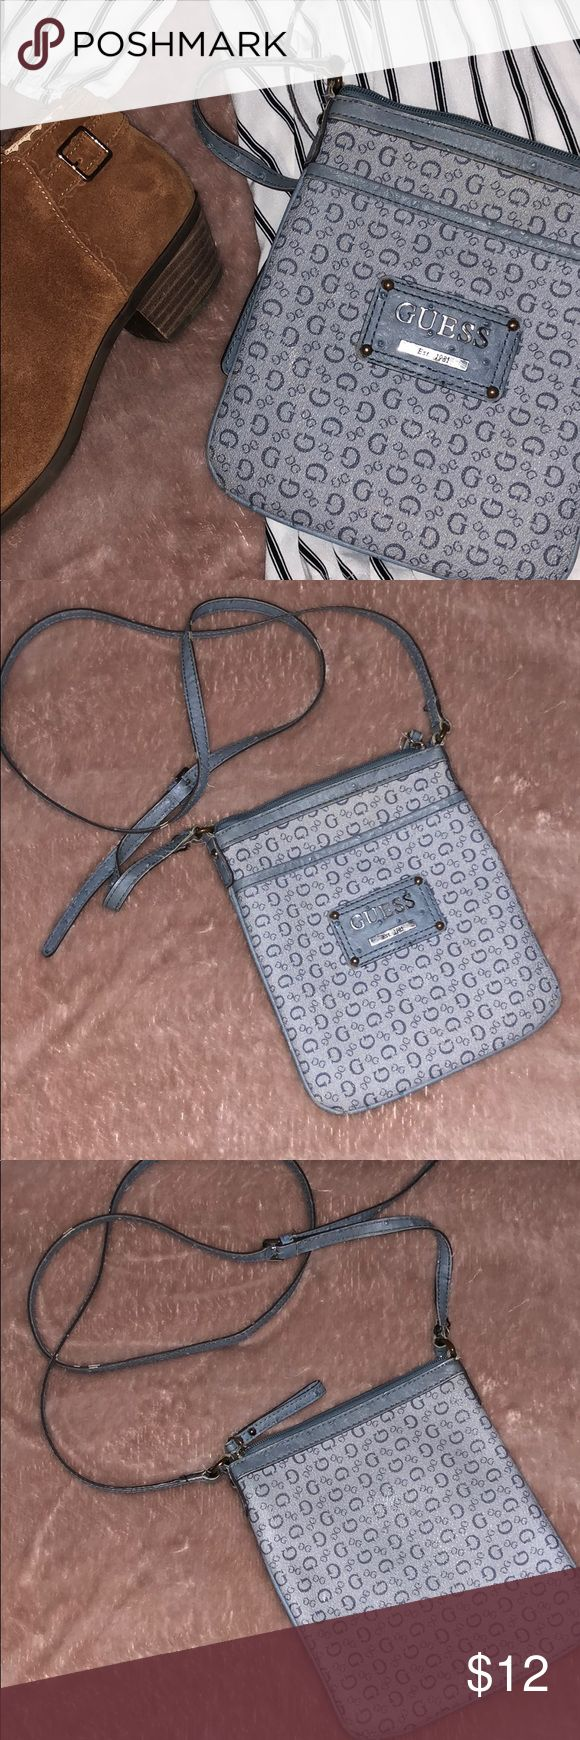 Guess Crossbody - Periwinkle Cute cross body used a few times. GREAT condition. Goes perfect with any outfit! Originally $65, selling for $12 Guess Bags Crossbody Bags